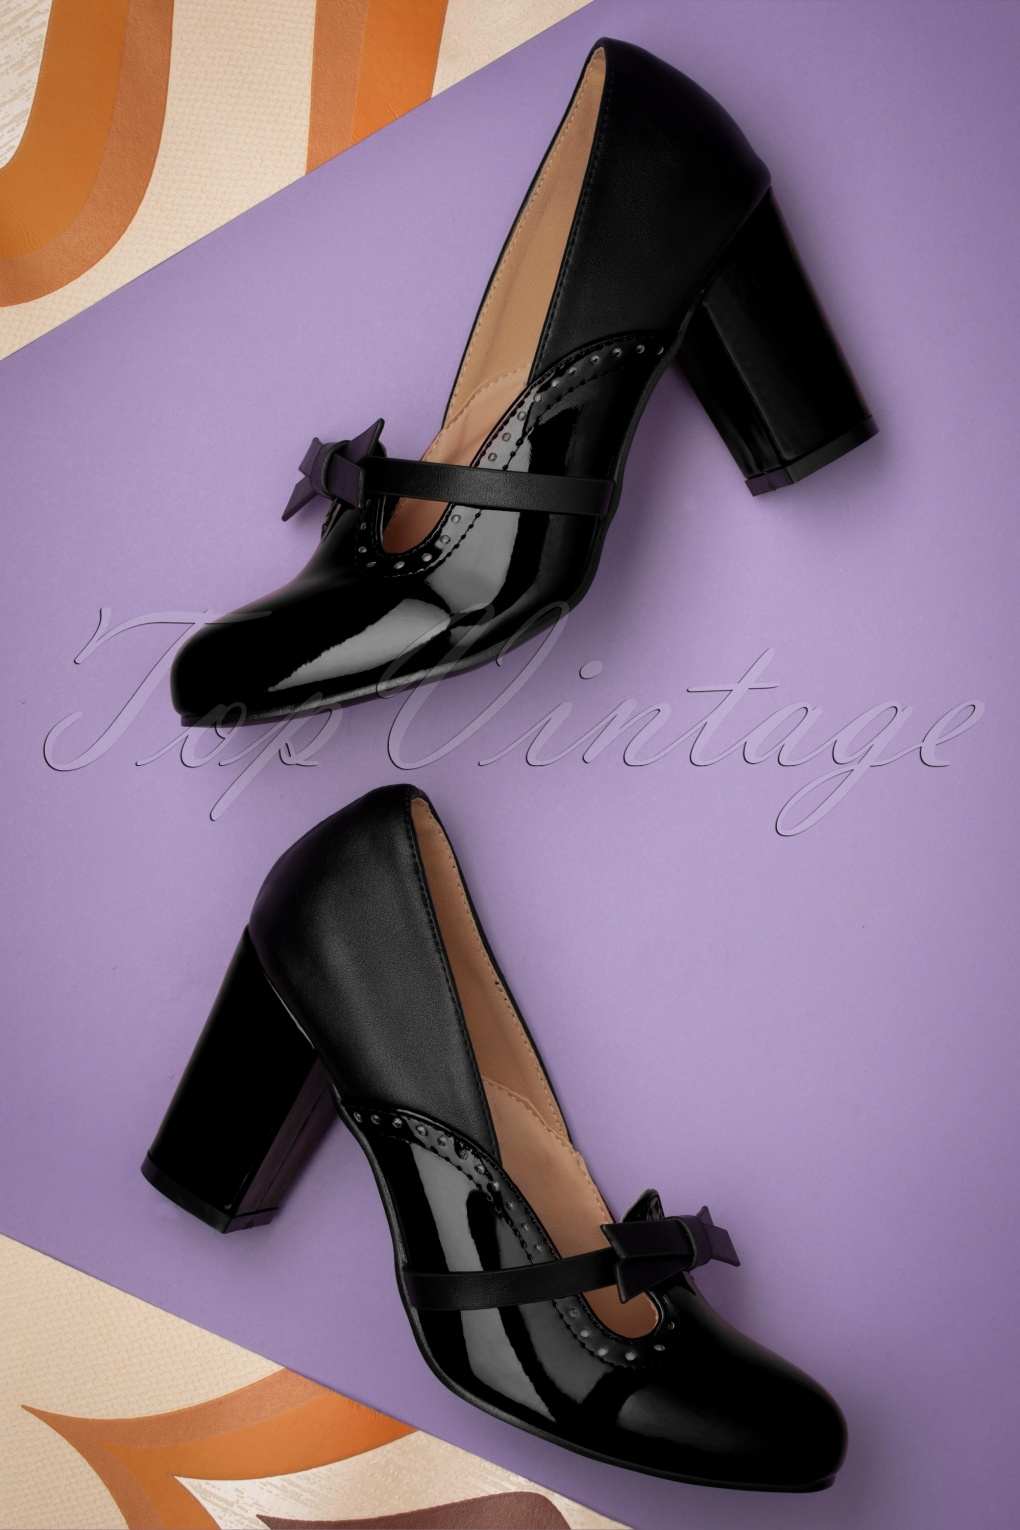 70s Clothes | Hippie Clothes & Outfits 60s My Sharona Pumps in Black £54.06 AT vintagedancer.com